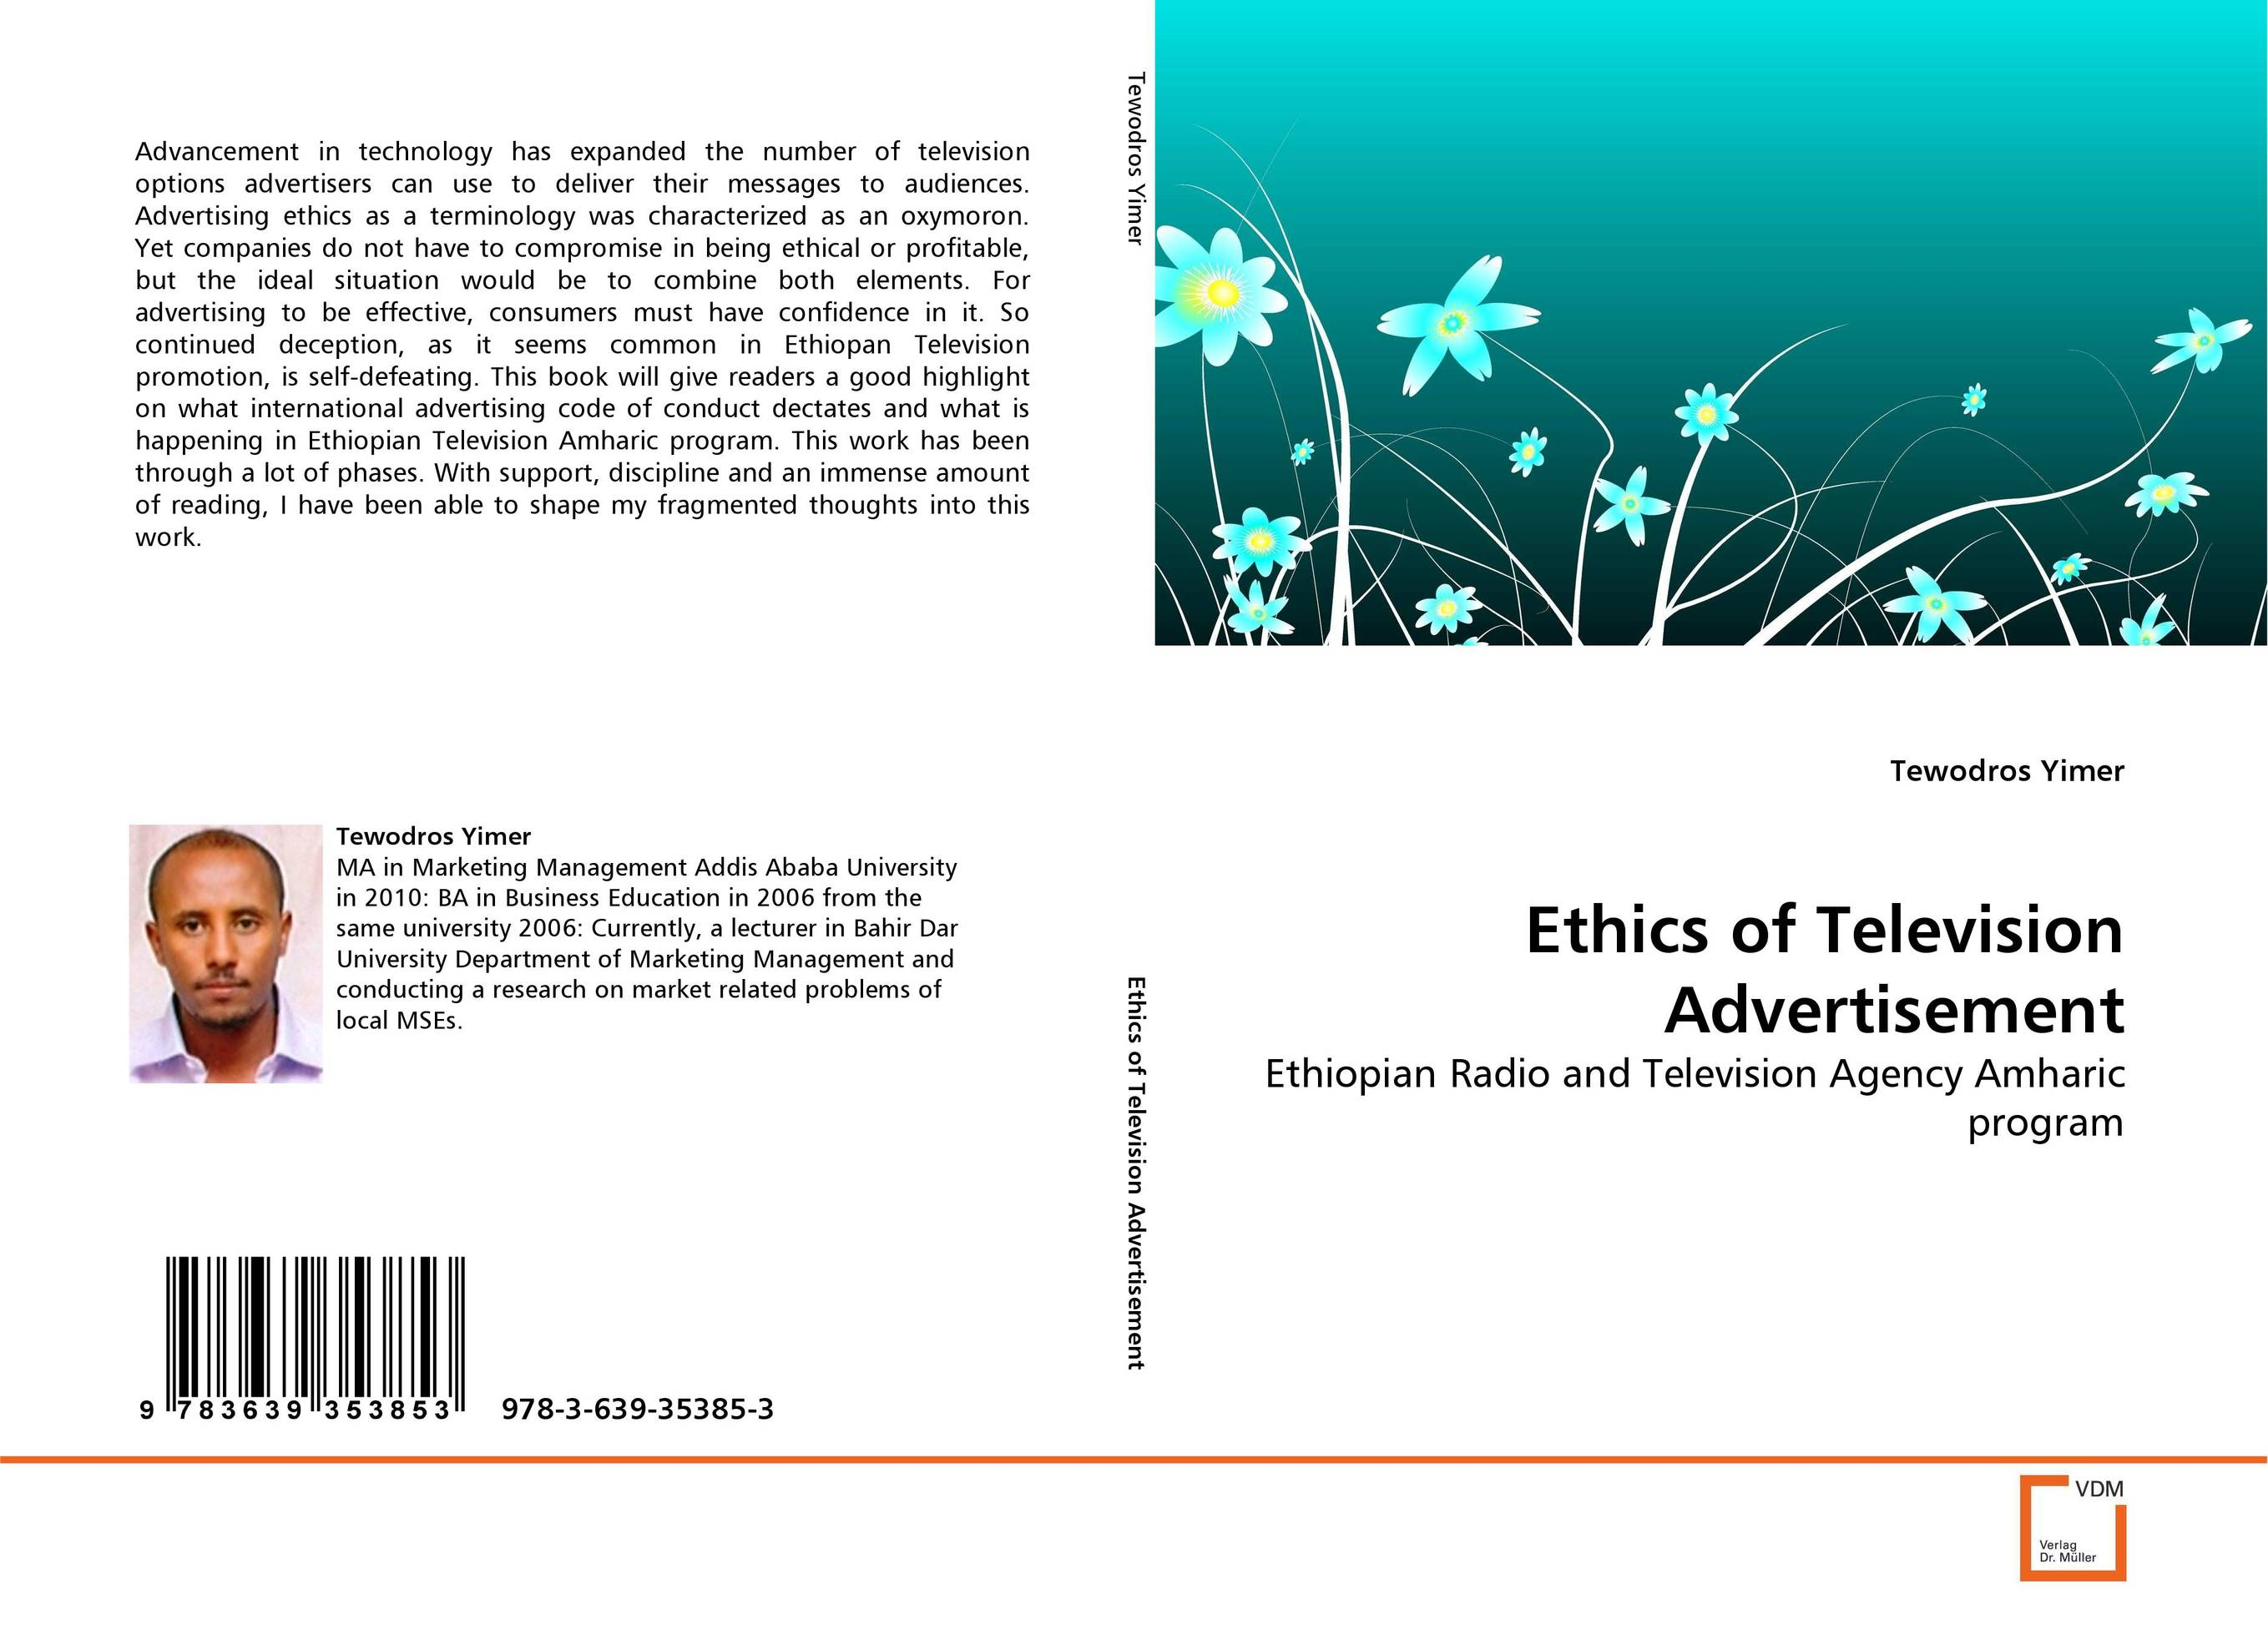 Ethics of Television Advertisement